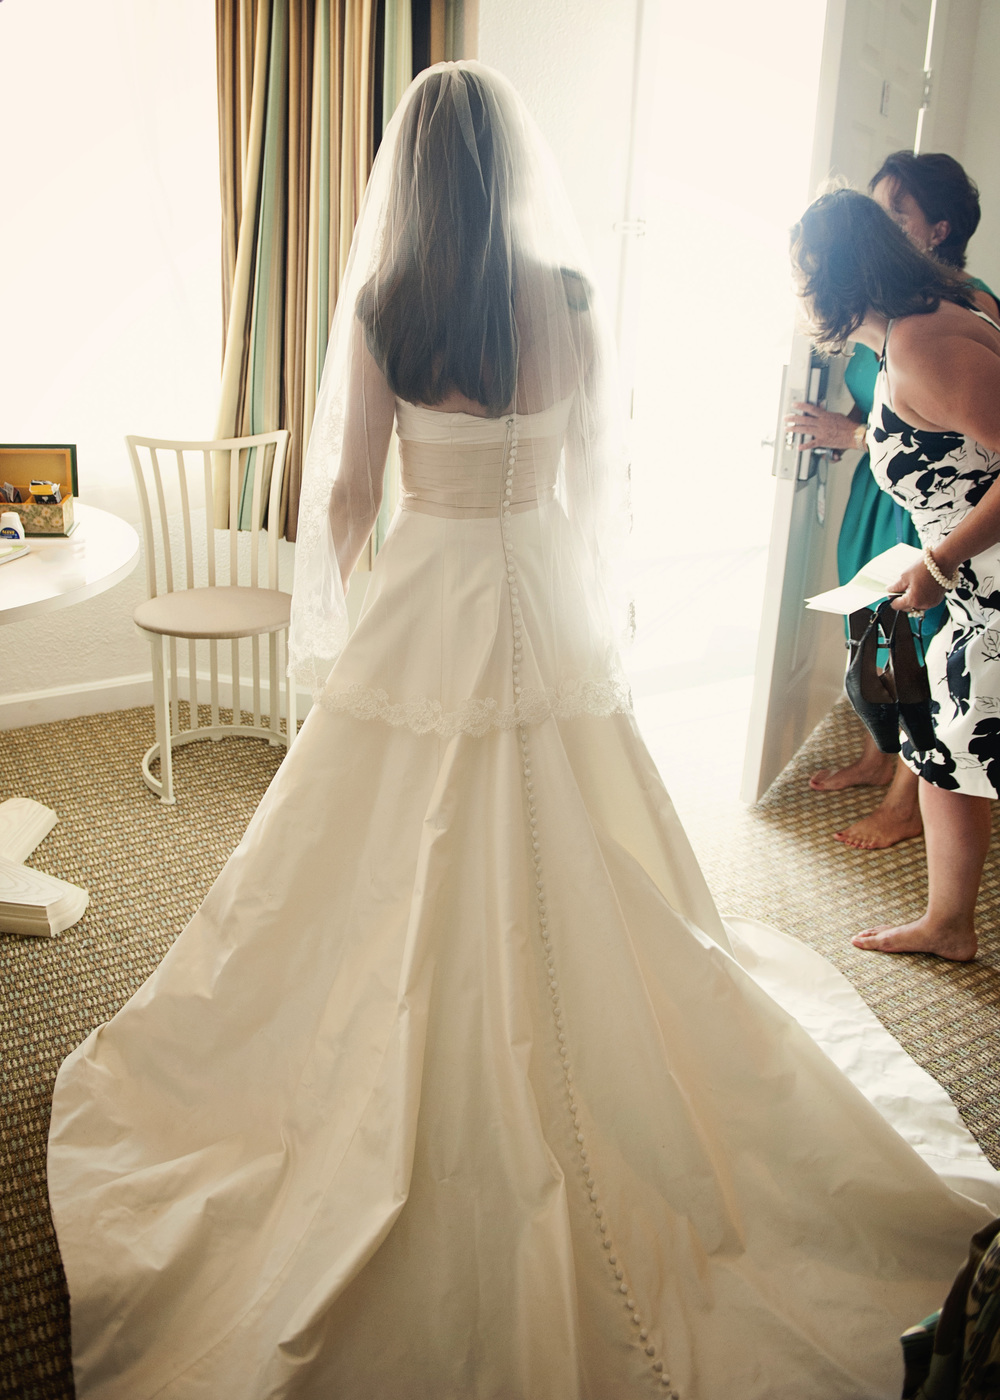 summer wedding bride ©ninapomeroy.com backlit gown hotel wine